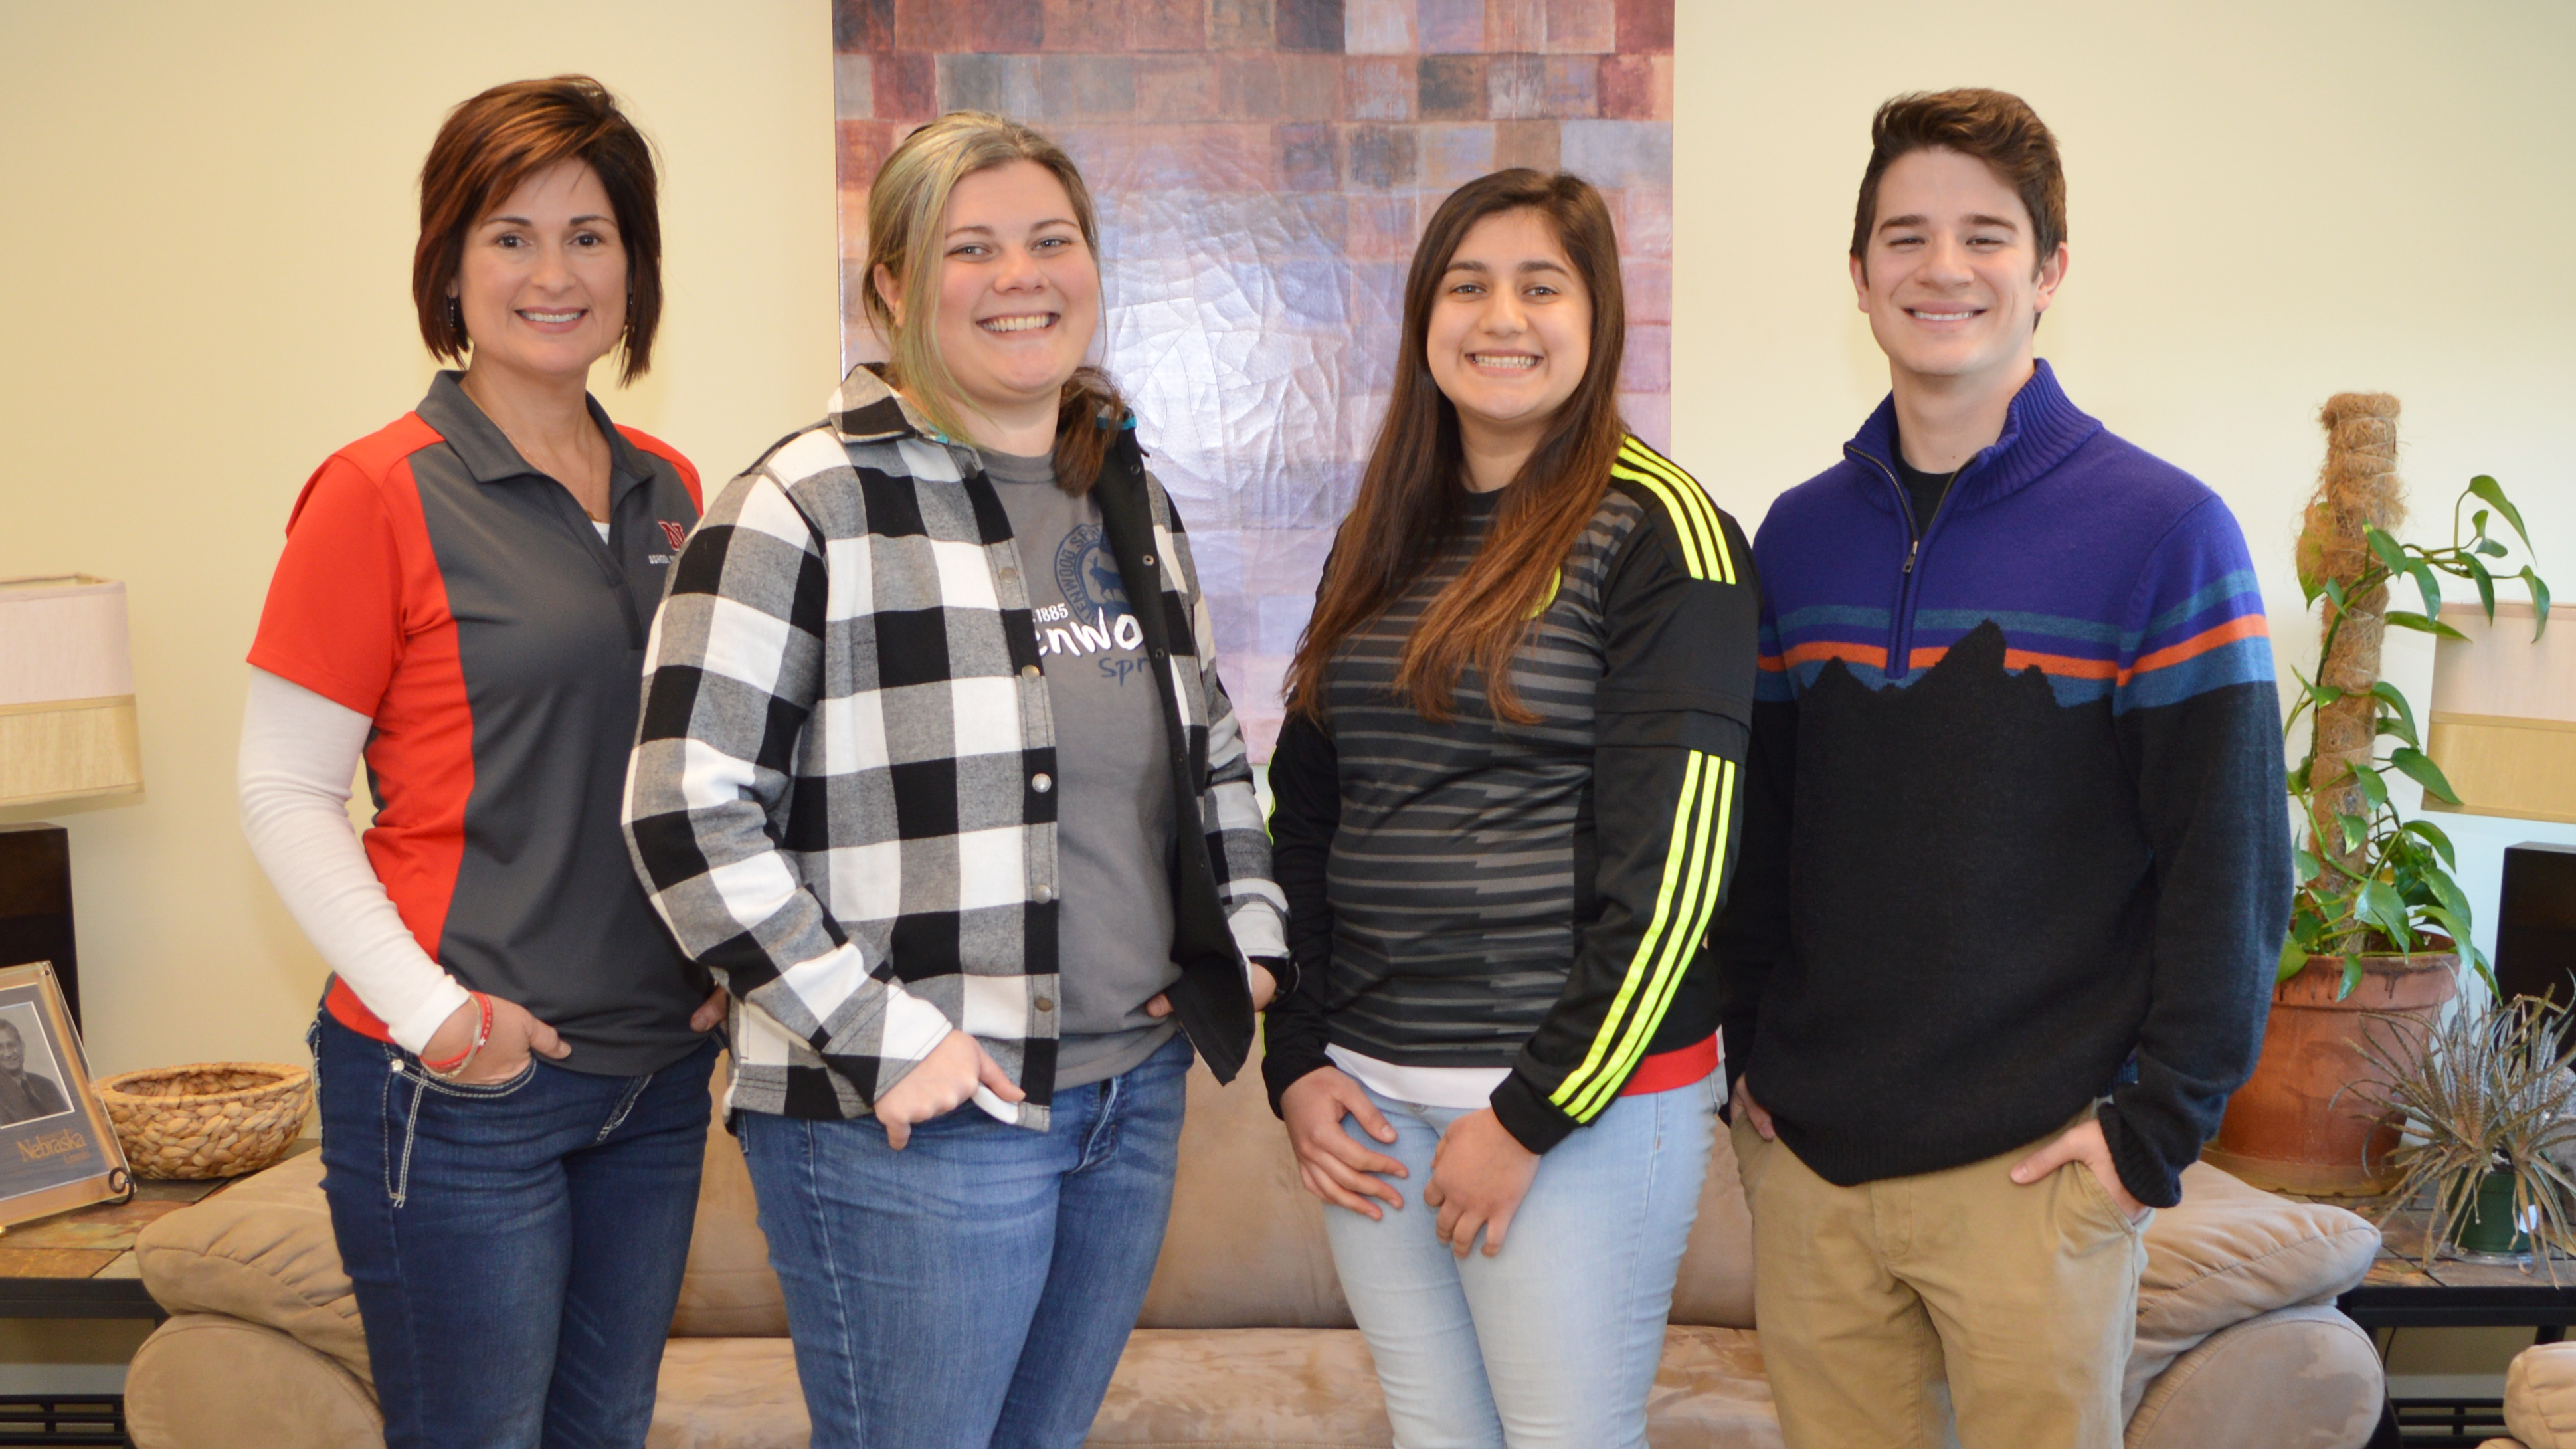 From left, Wilma Gerena, Katerina Lozano, Jazmin Castillo, and Dillon Hanson, all with the School of Natural Resources, have started a new club: Latins for Natural Resources.